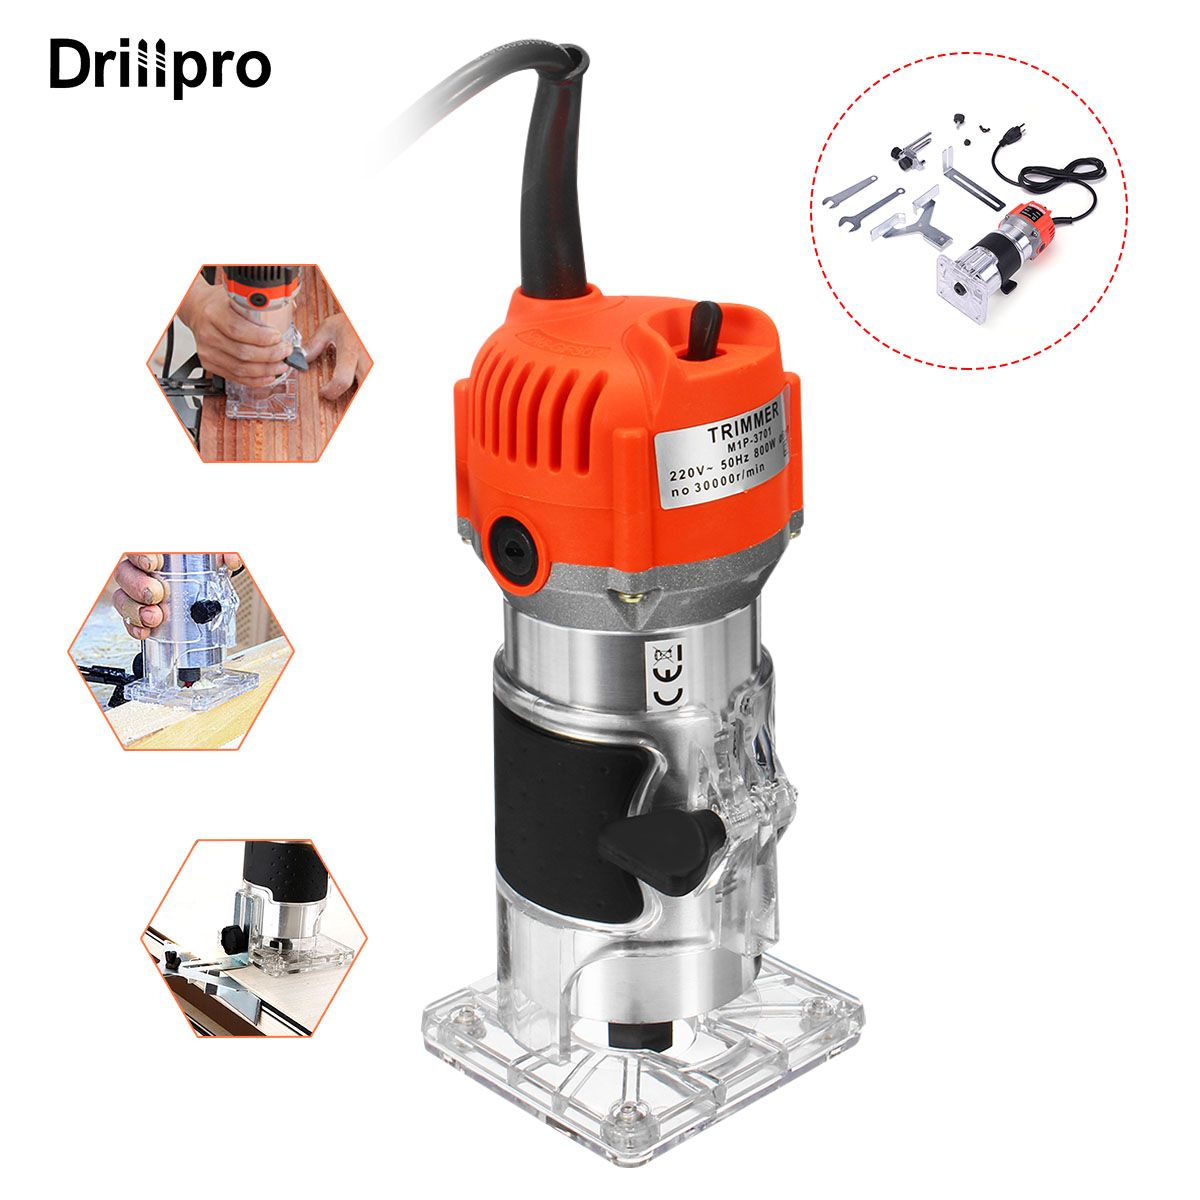 Drillpro 800w 30000r/min Woodworking Electric Trimmer 220V Slotting Trimming Machine Trimmer Milling Engraving Power Tools DIY